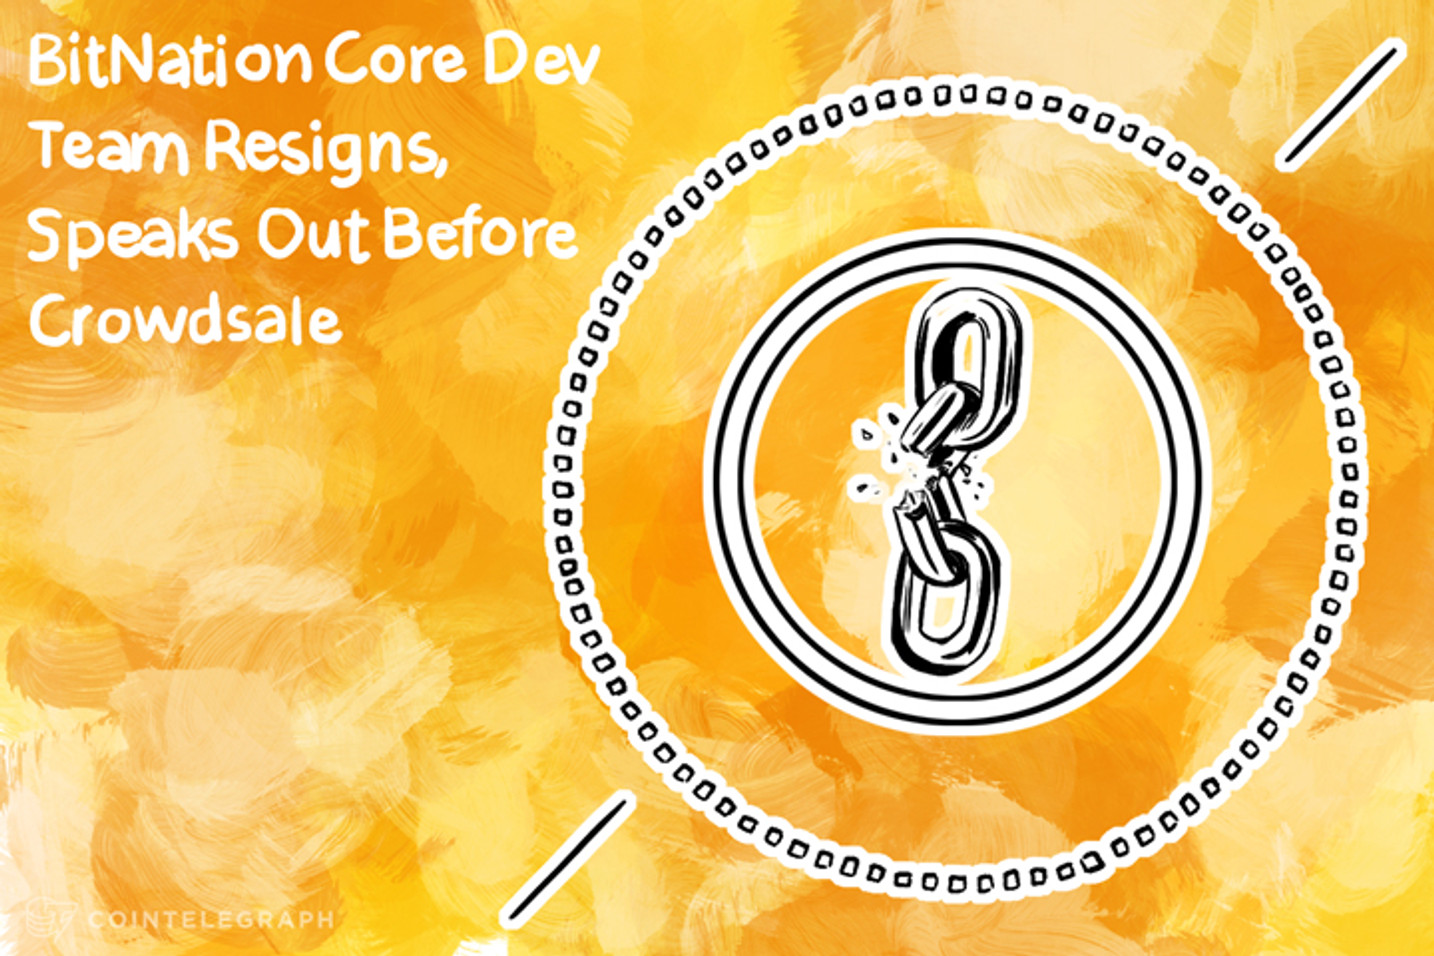 Bitnation Core Dev Team Resigns, Speak Out Before Crowdsale